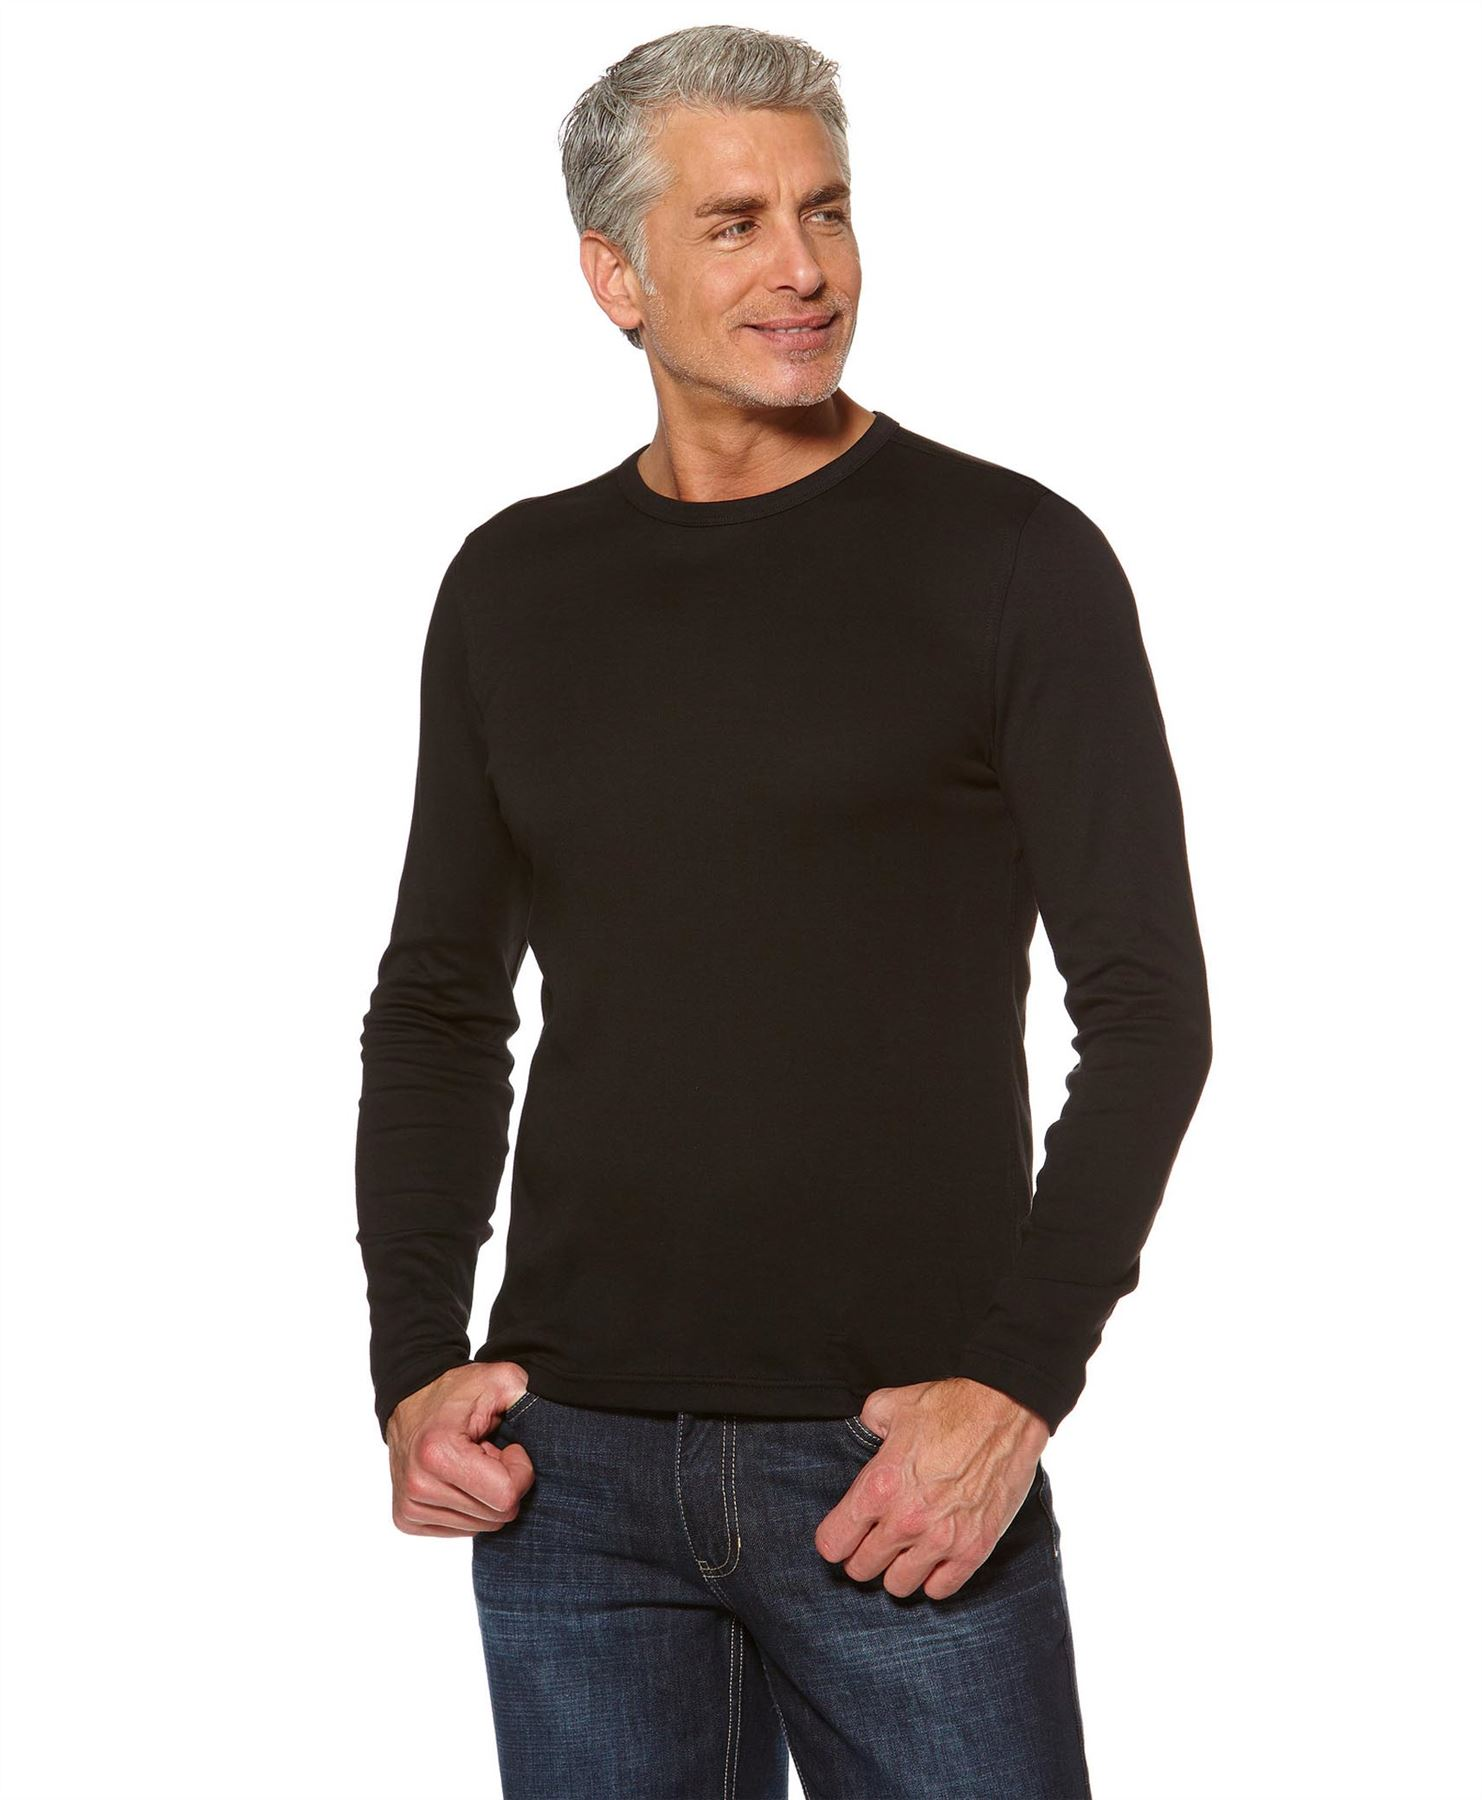 MENS ROUND NECK PLAIN COTTON TOP LONG SLEEVE STRETCHY ...